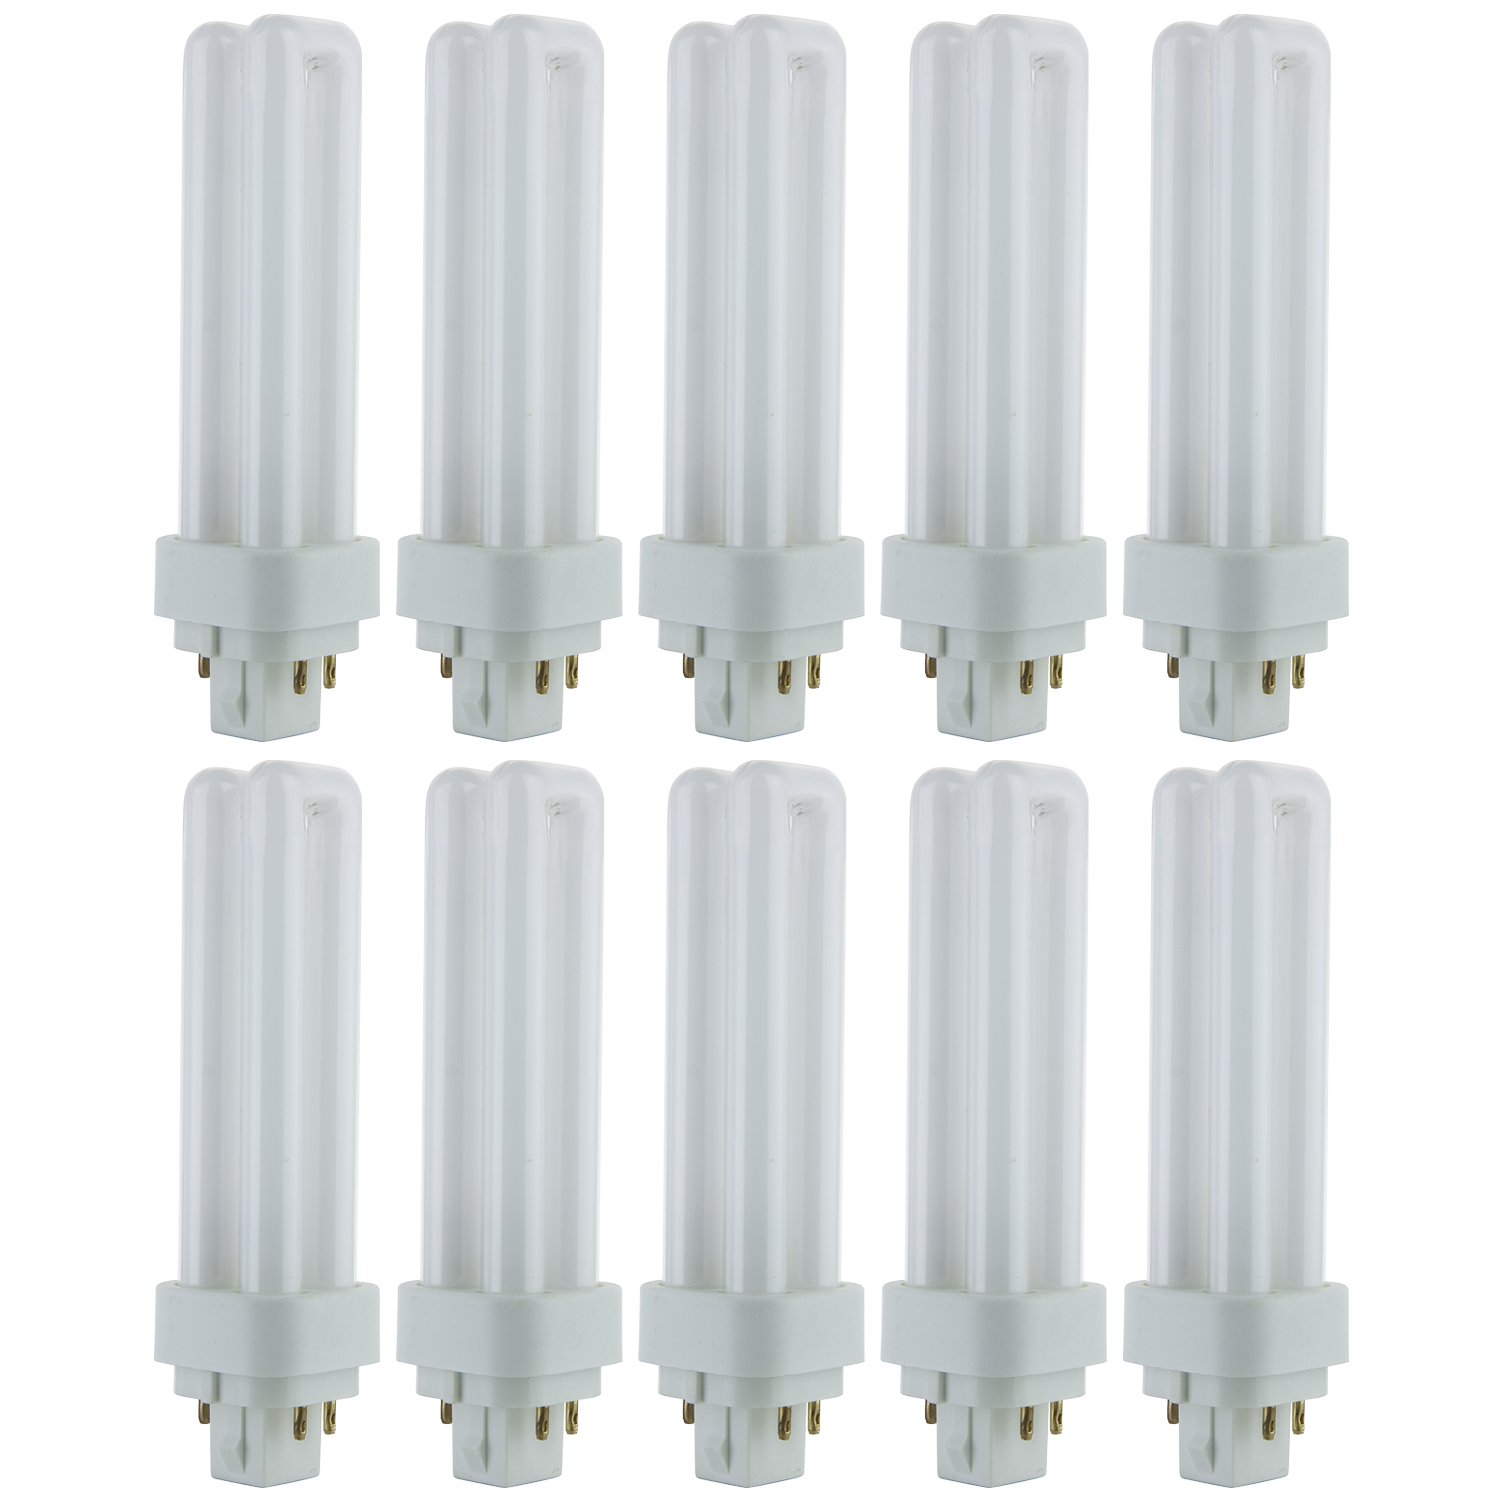 Sunlite PLD13/E/SP50K/10PK 5000K Super White Fluorescent 13W PLD Double U-Shaped Twin Tube CFL Bulbs with 4-Pin G24Q-1 Base (10 Pack)